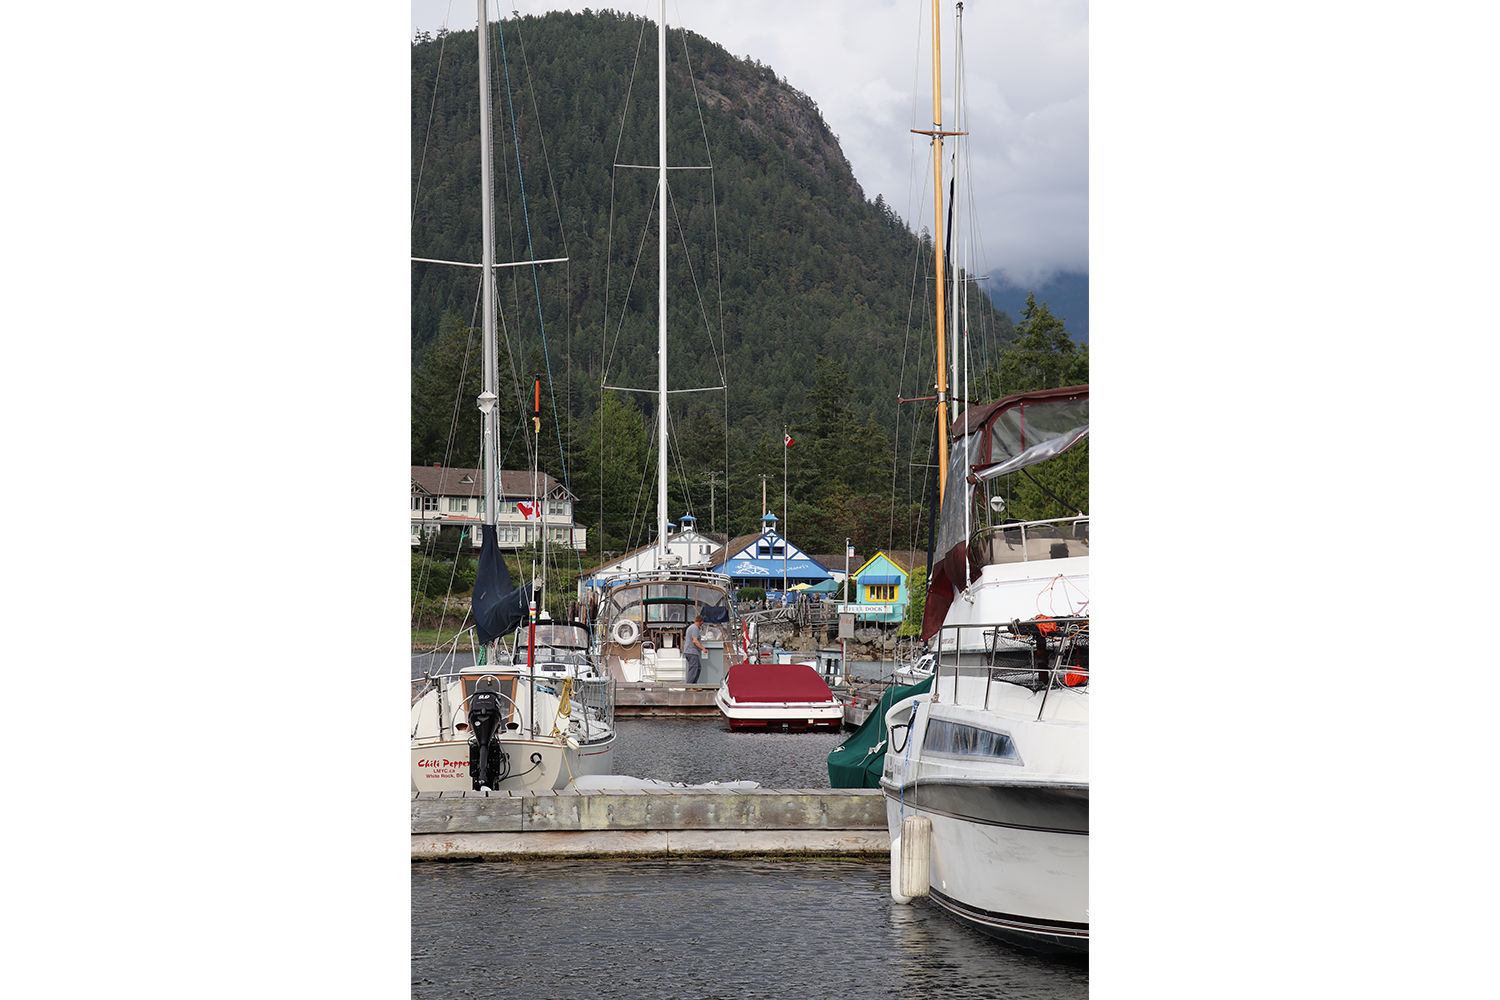 A view from the end of the dock of boats parked in the Marina and John Henry's General Store in the background.